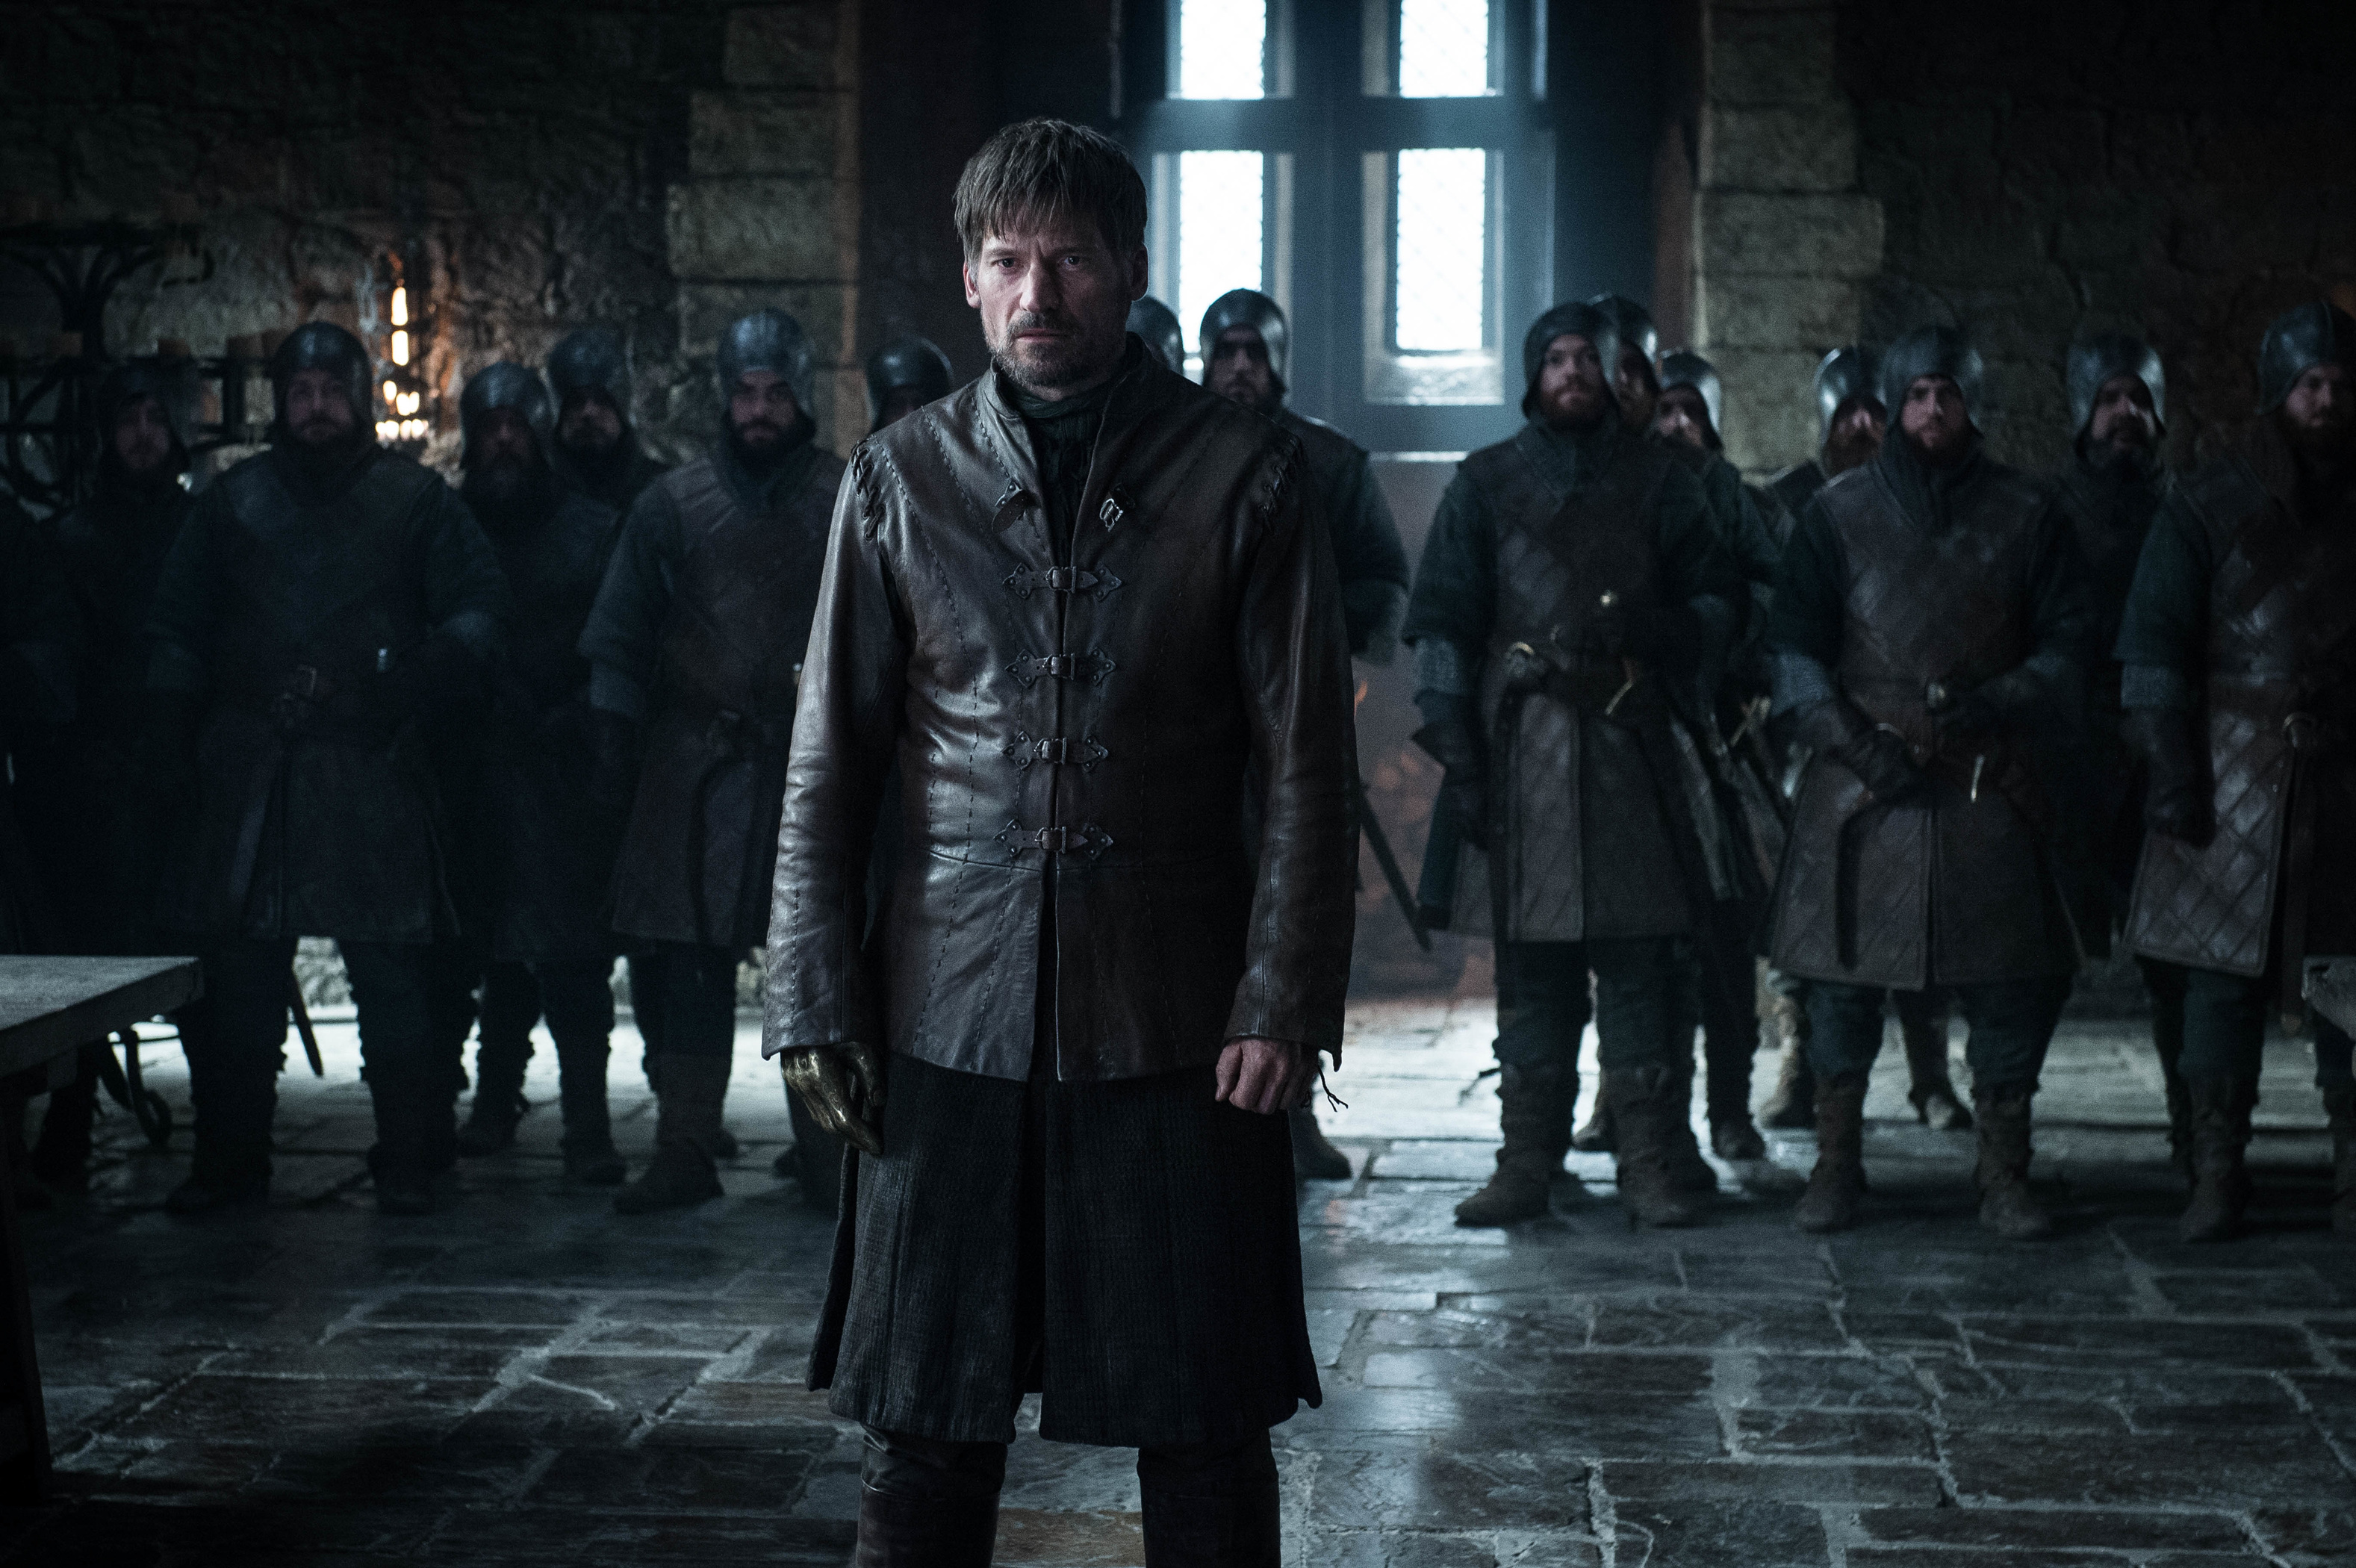 Amazon Apologizes for Leaking 'Game of Thrones' Episode Early